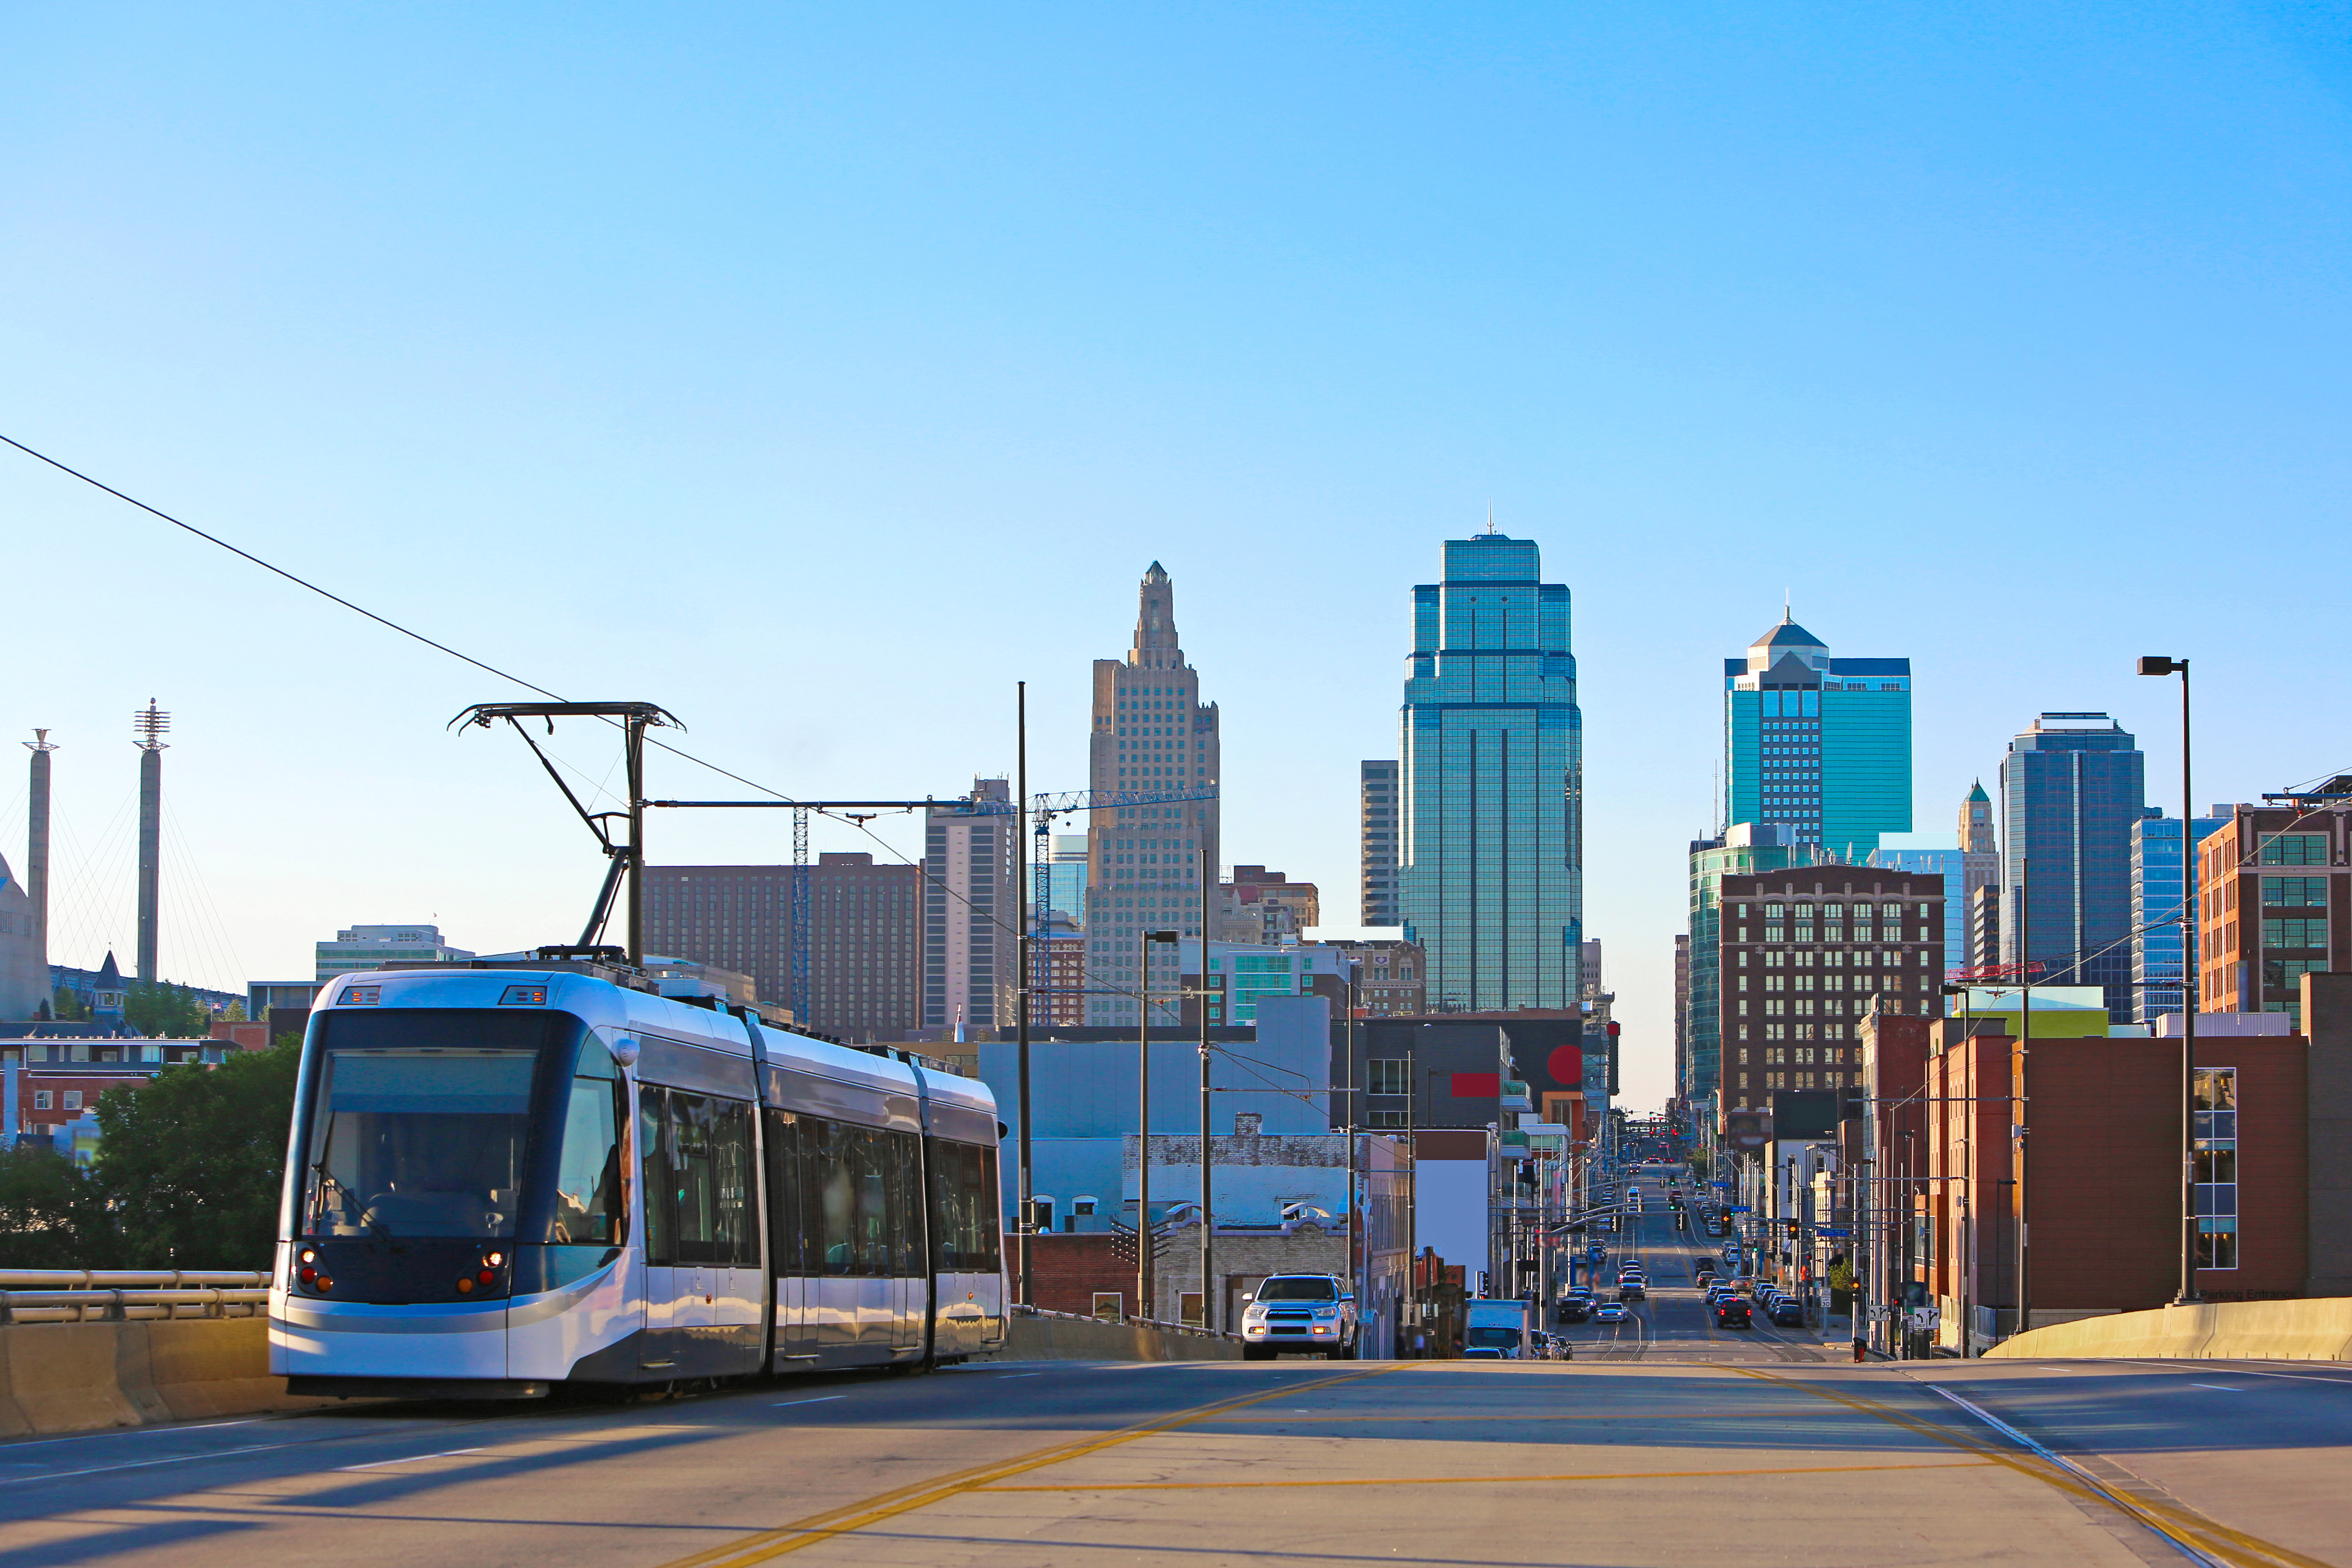 A shiny silver modern streetcar is seen surging up a wide street with a colorful city skyline seen the distance.